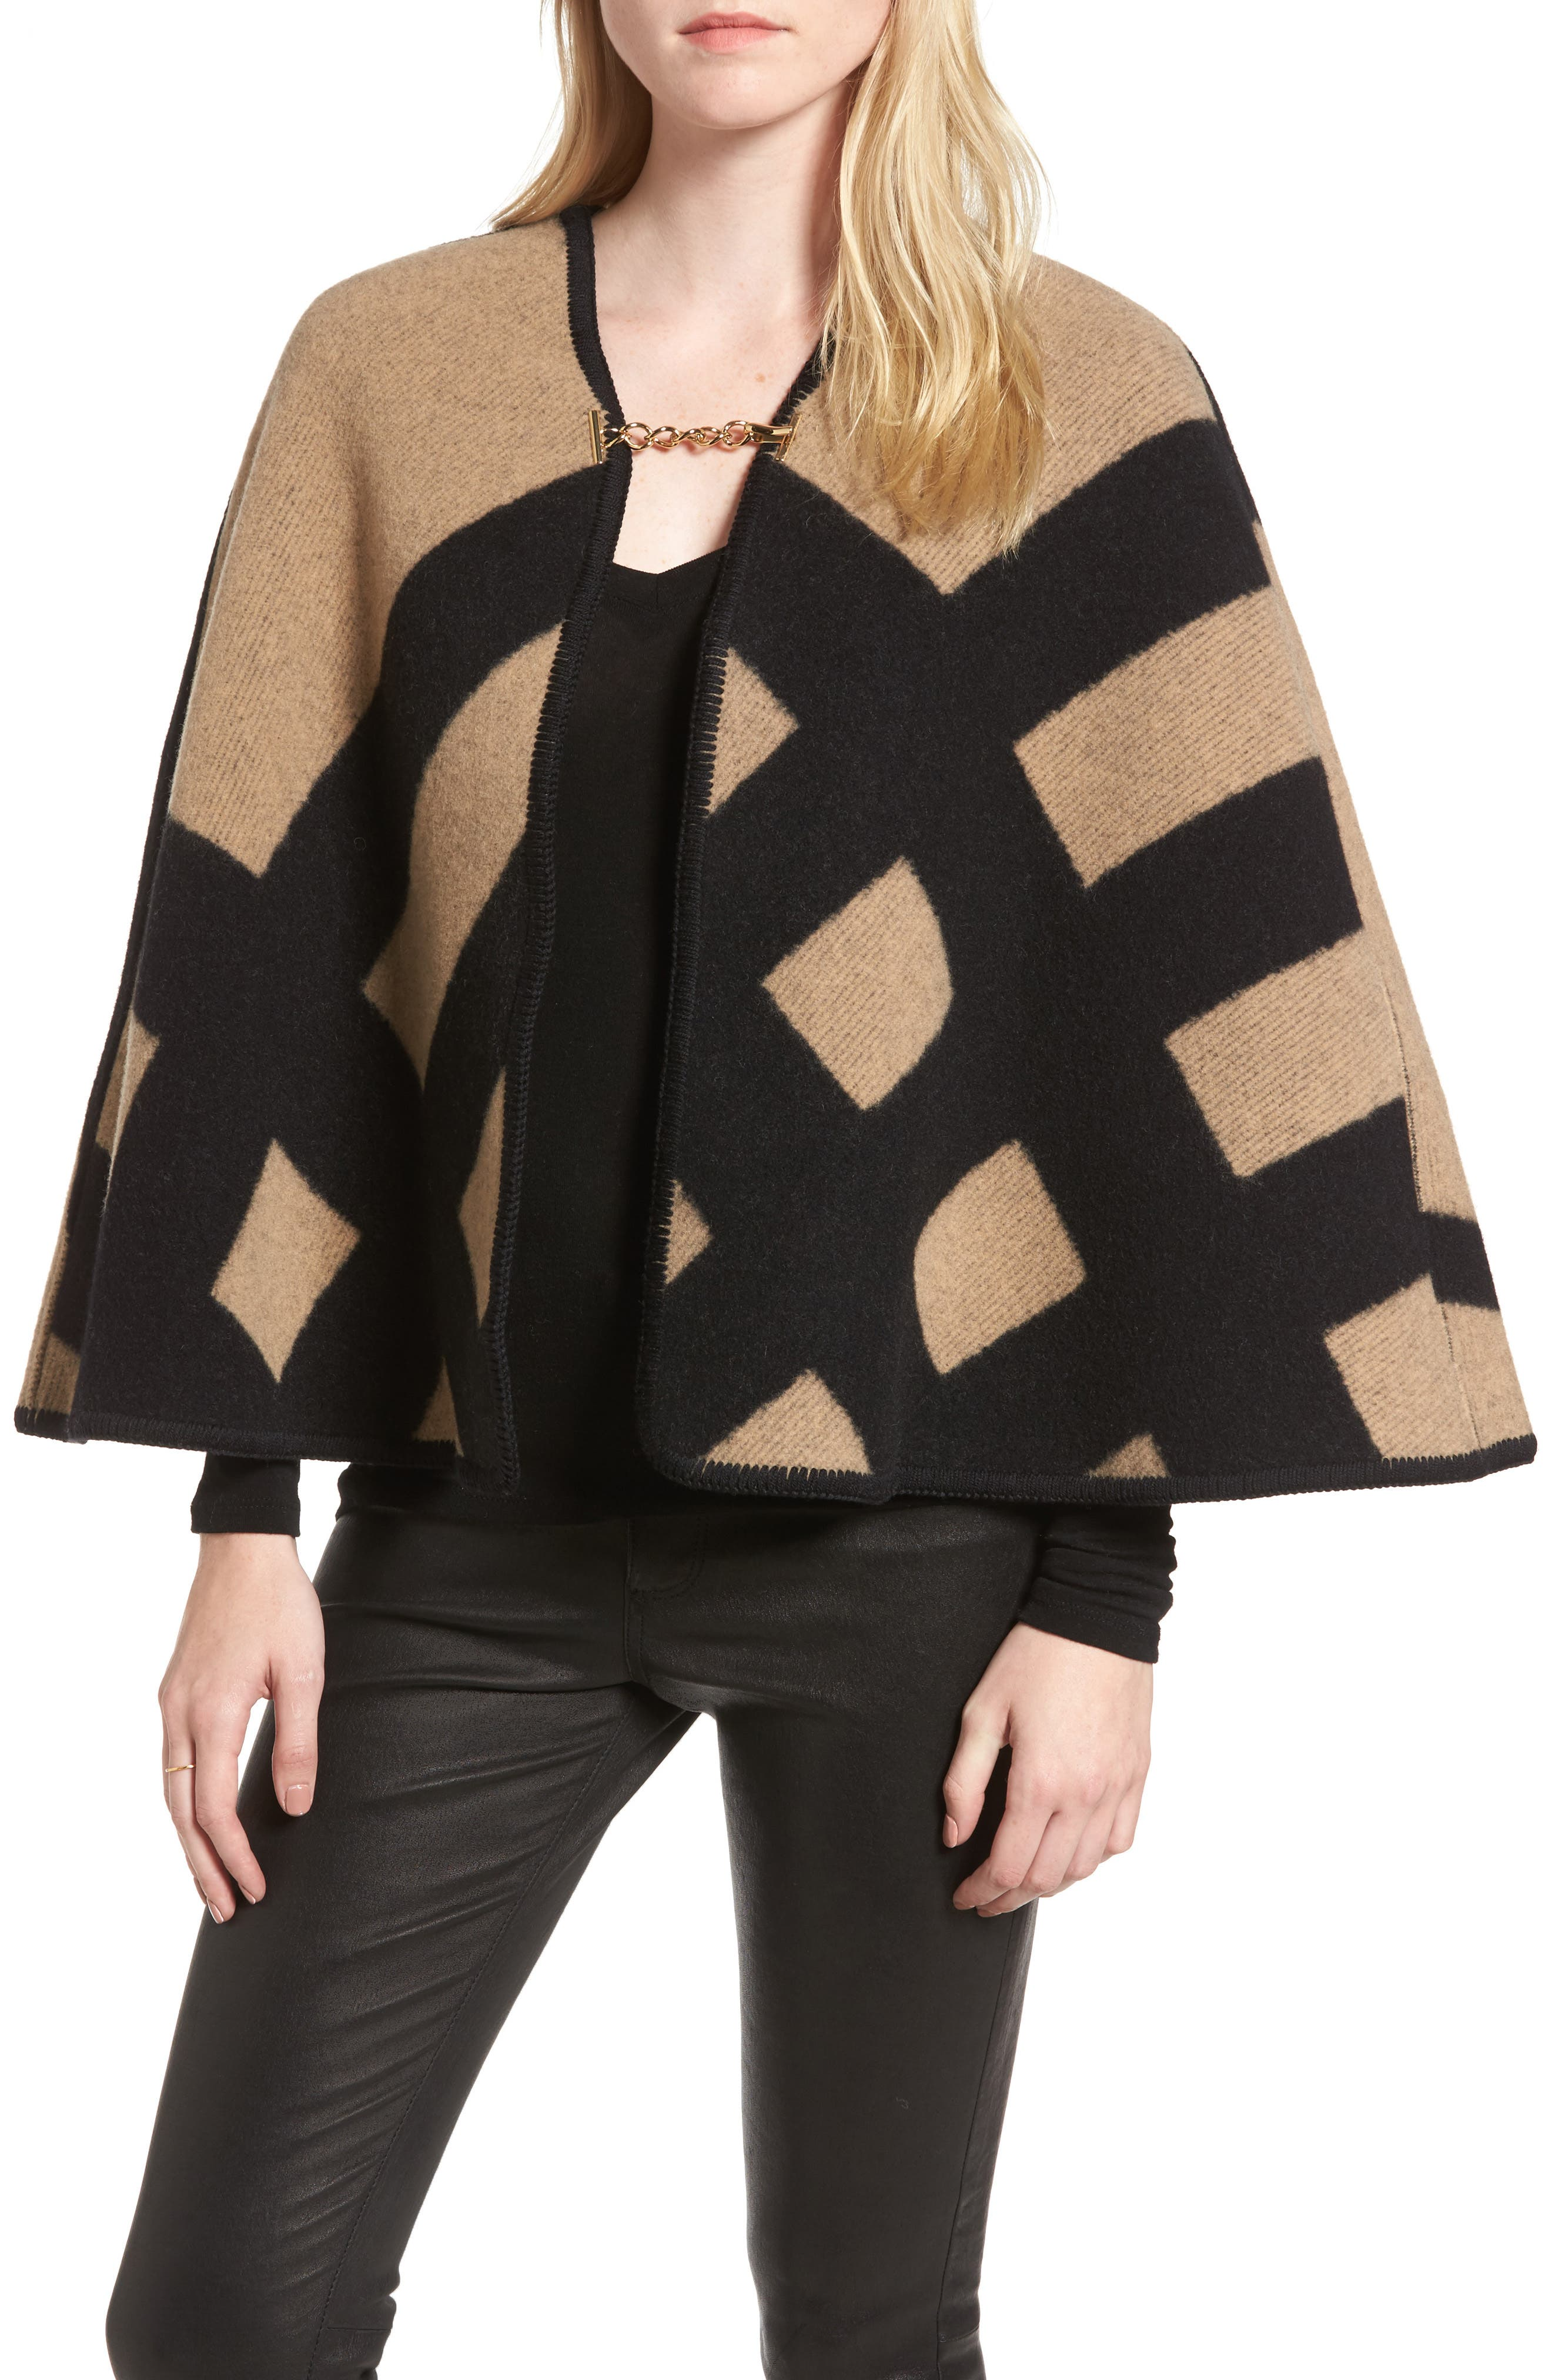 Main Image - Burberry Blanket Check Wool & Cashmere Poncho